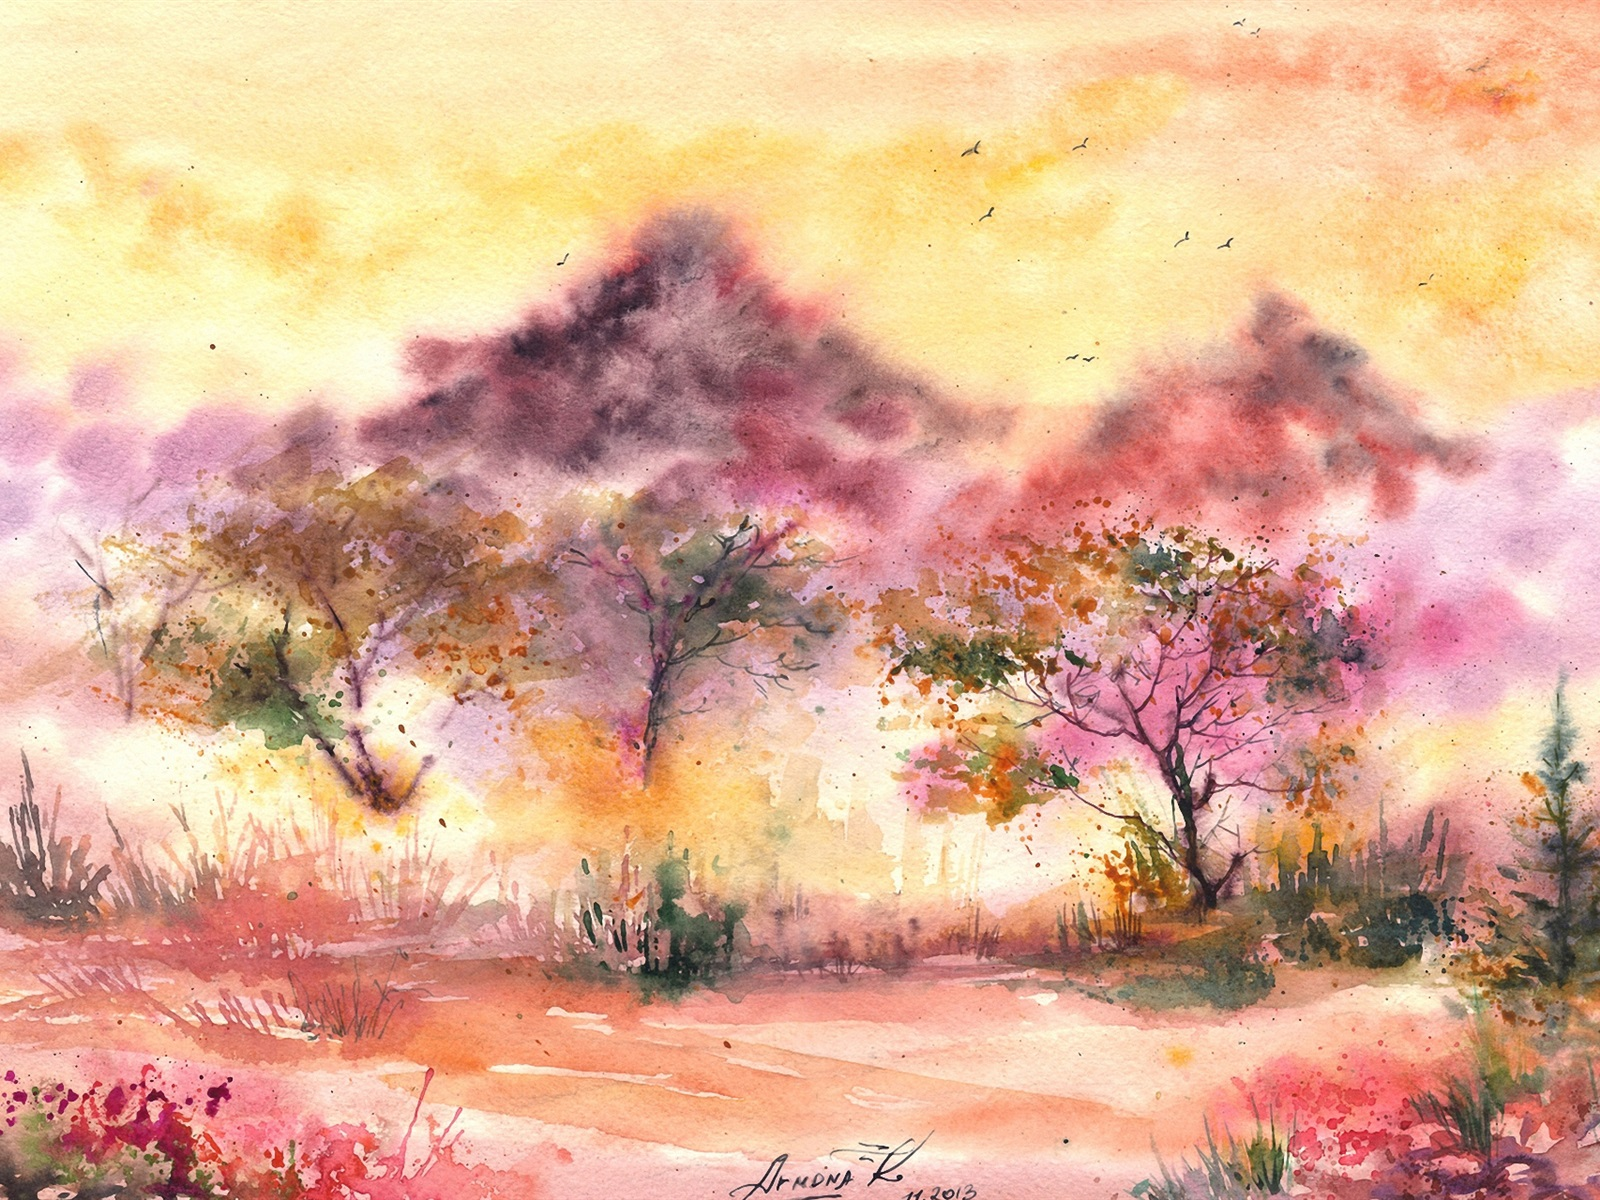 Download Wallpaper 1600x1200 Watercolor painting ...